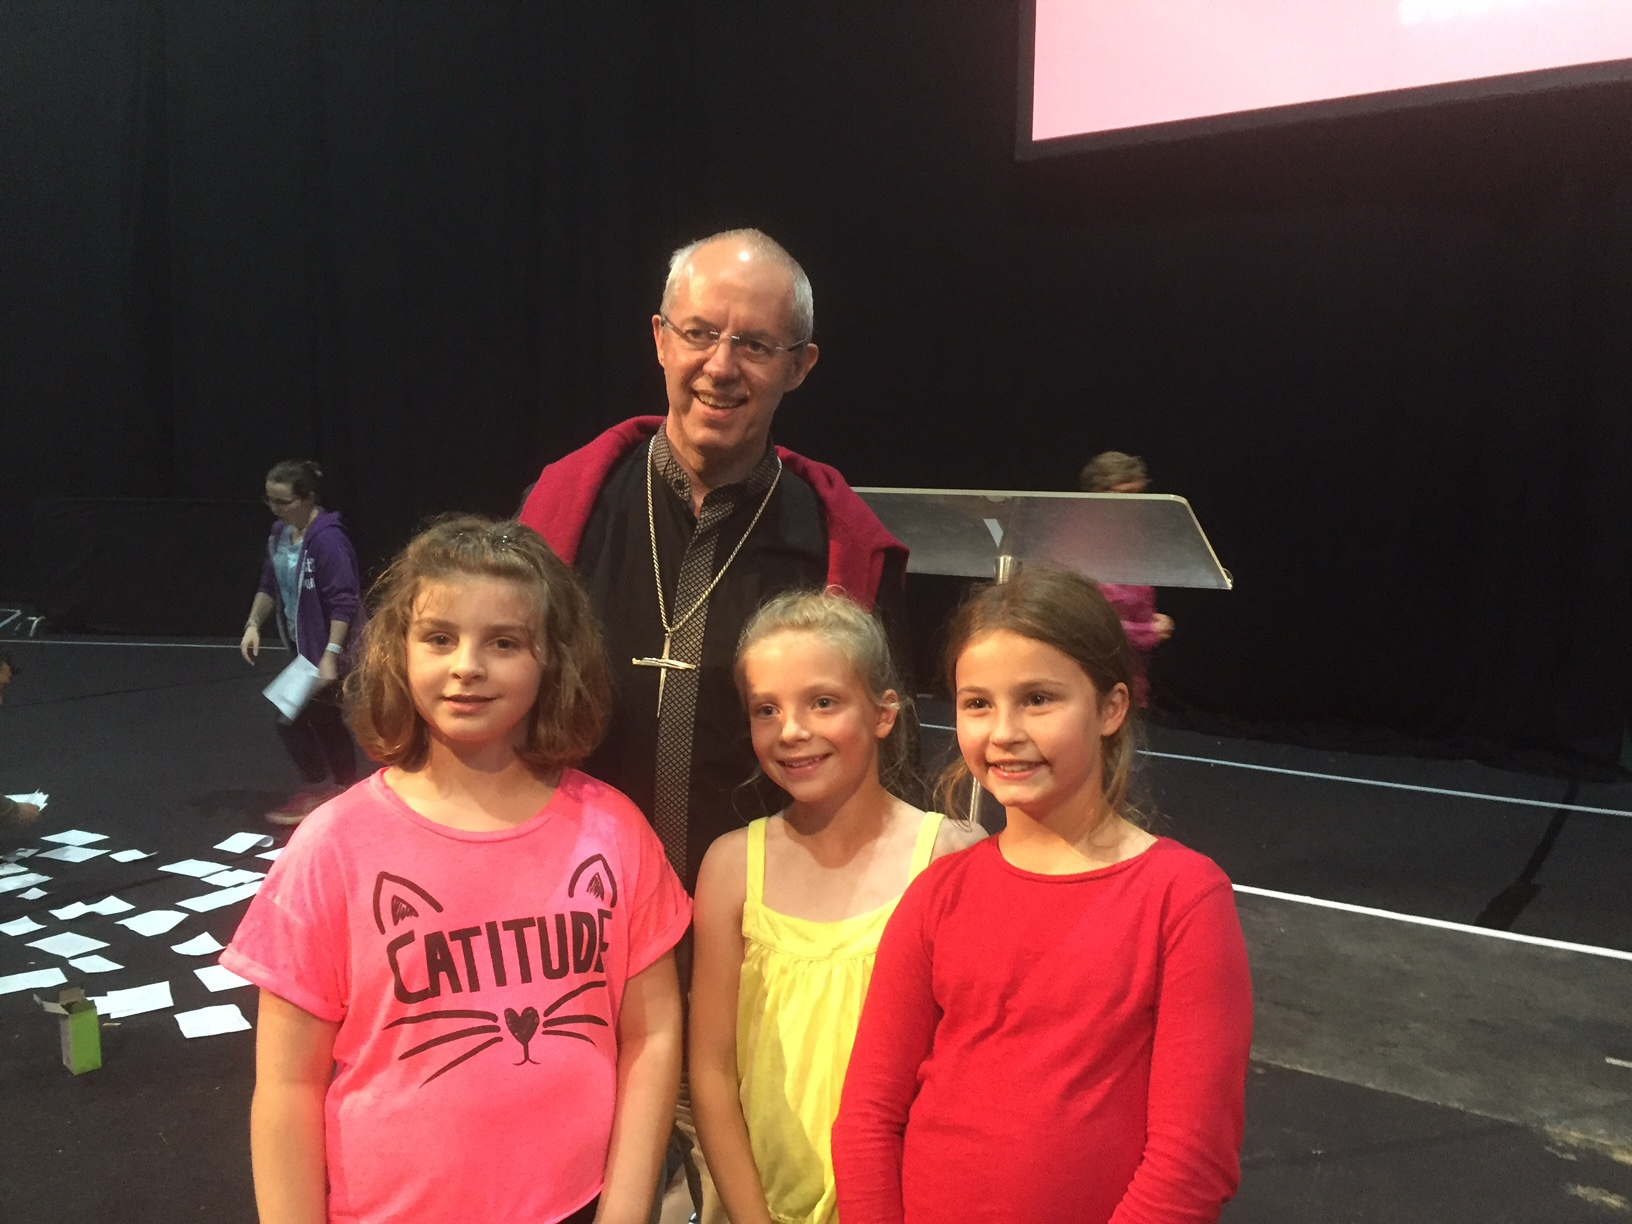 Some of our children meeting Archbishop Justin Welby